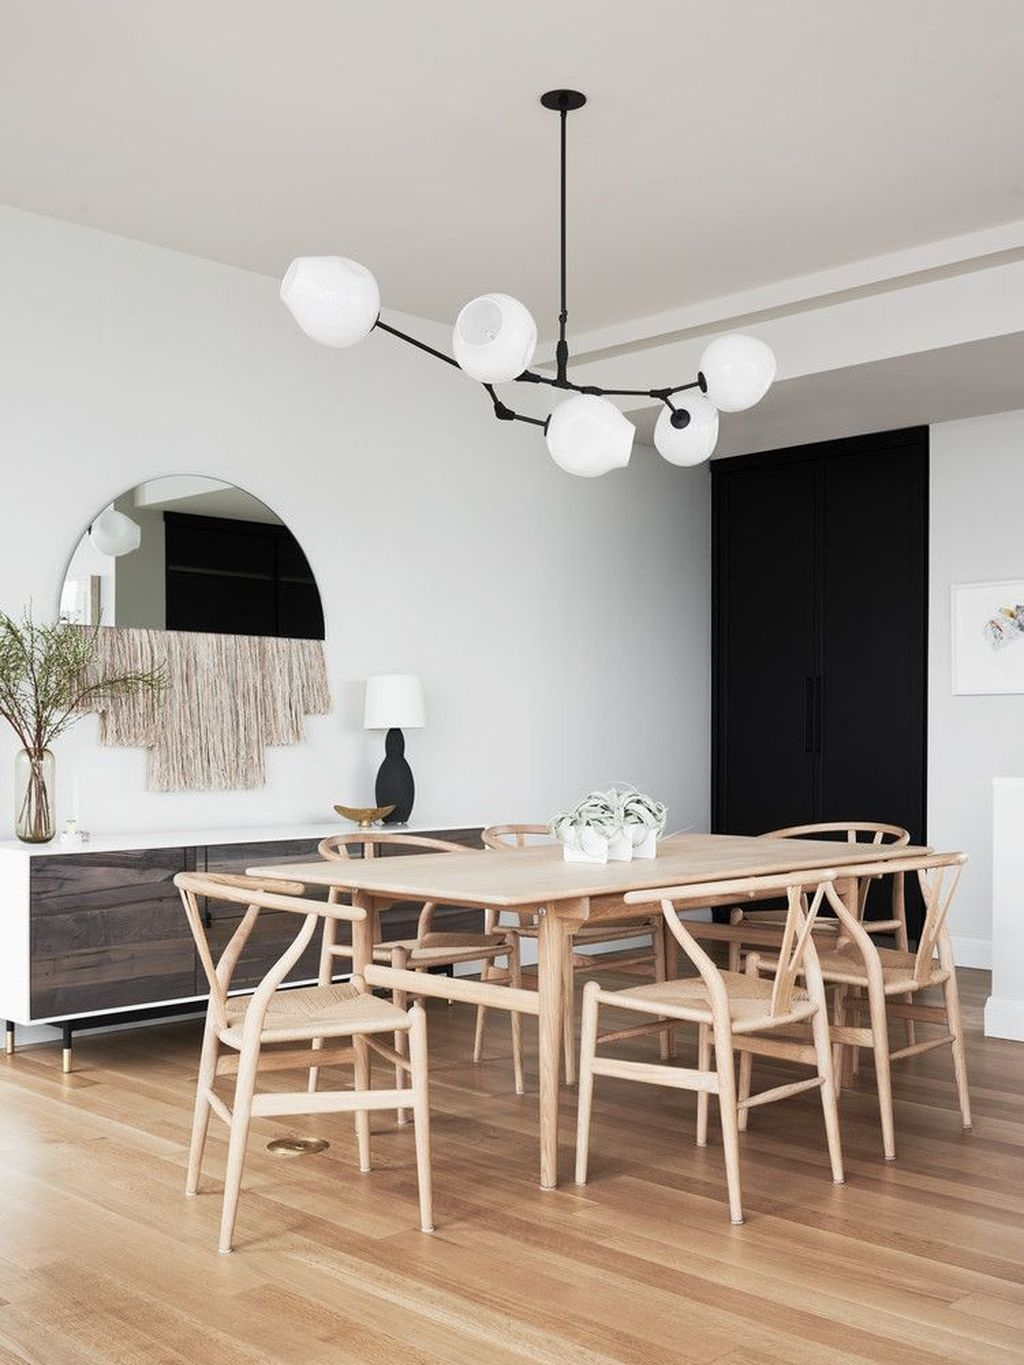 Best Minimalist Dining Room Design Ideas For Dinner With Your Family26